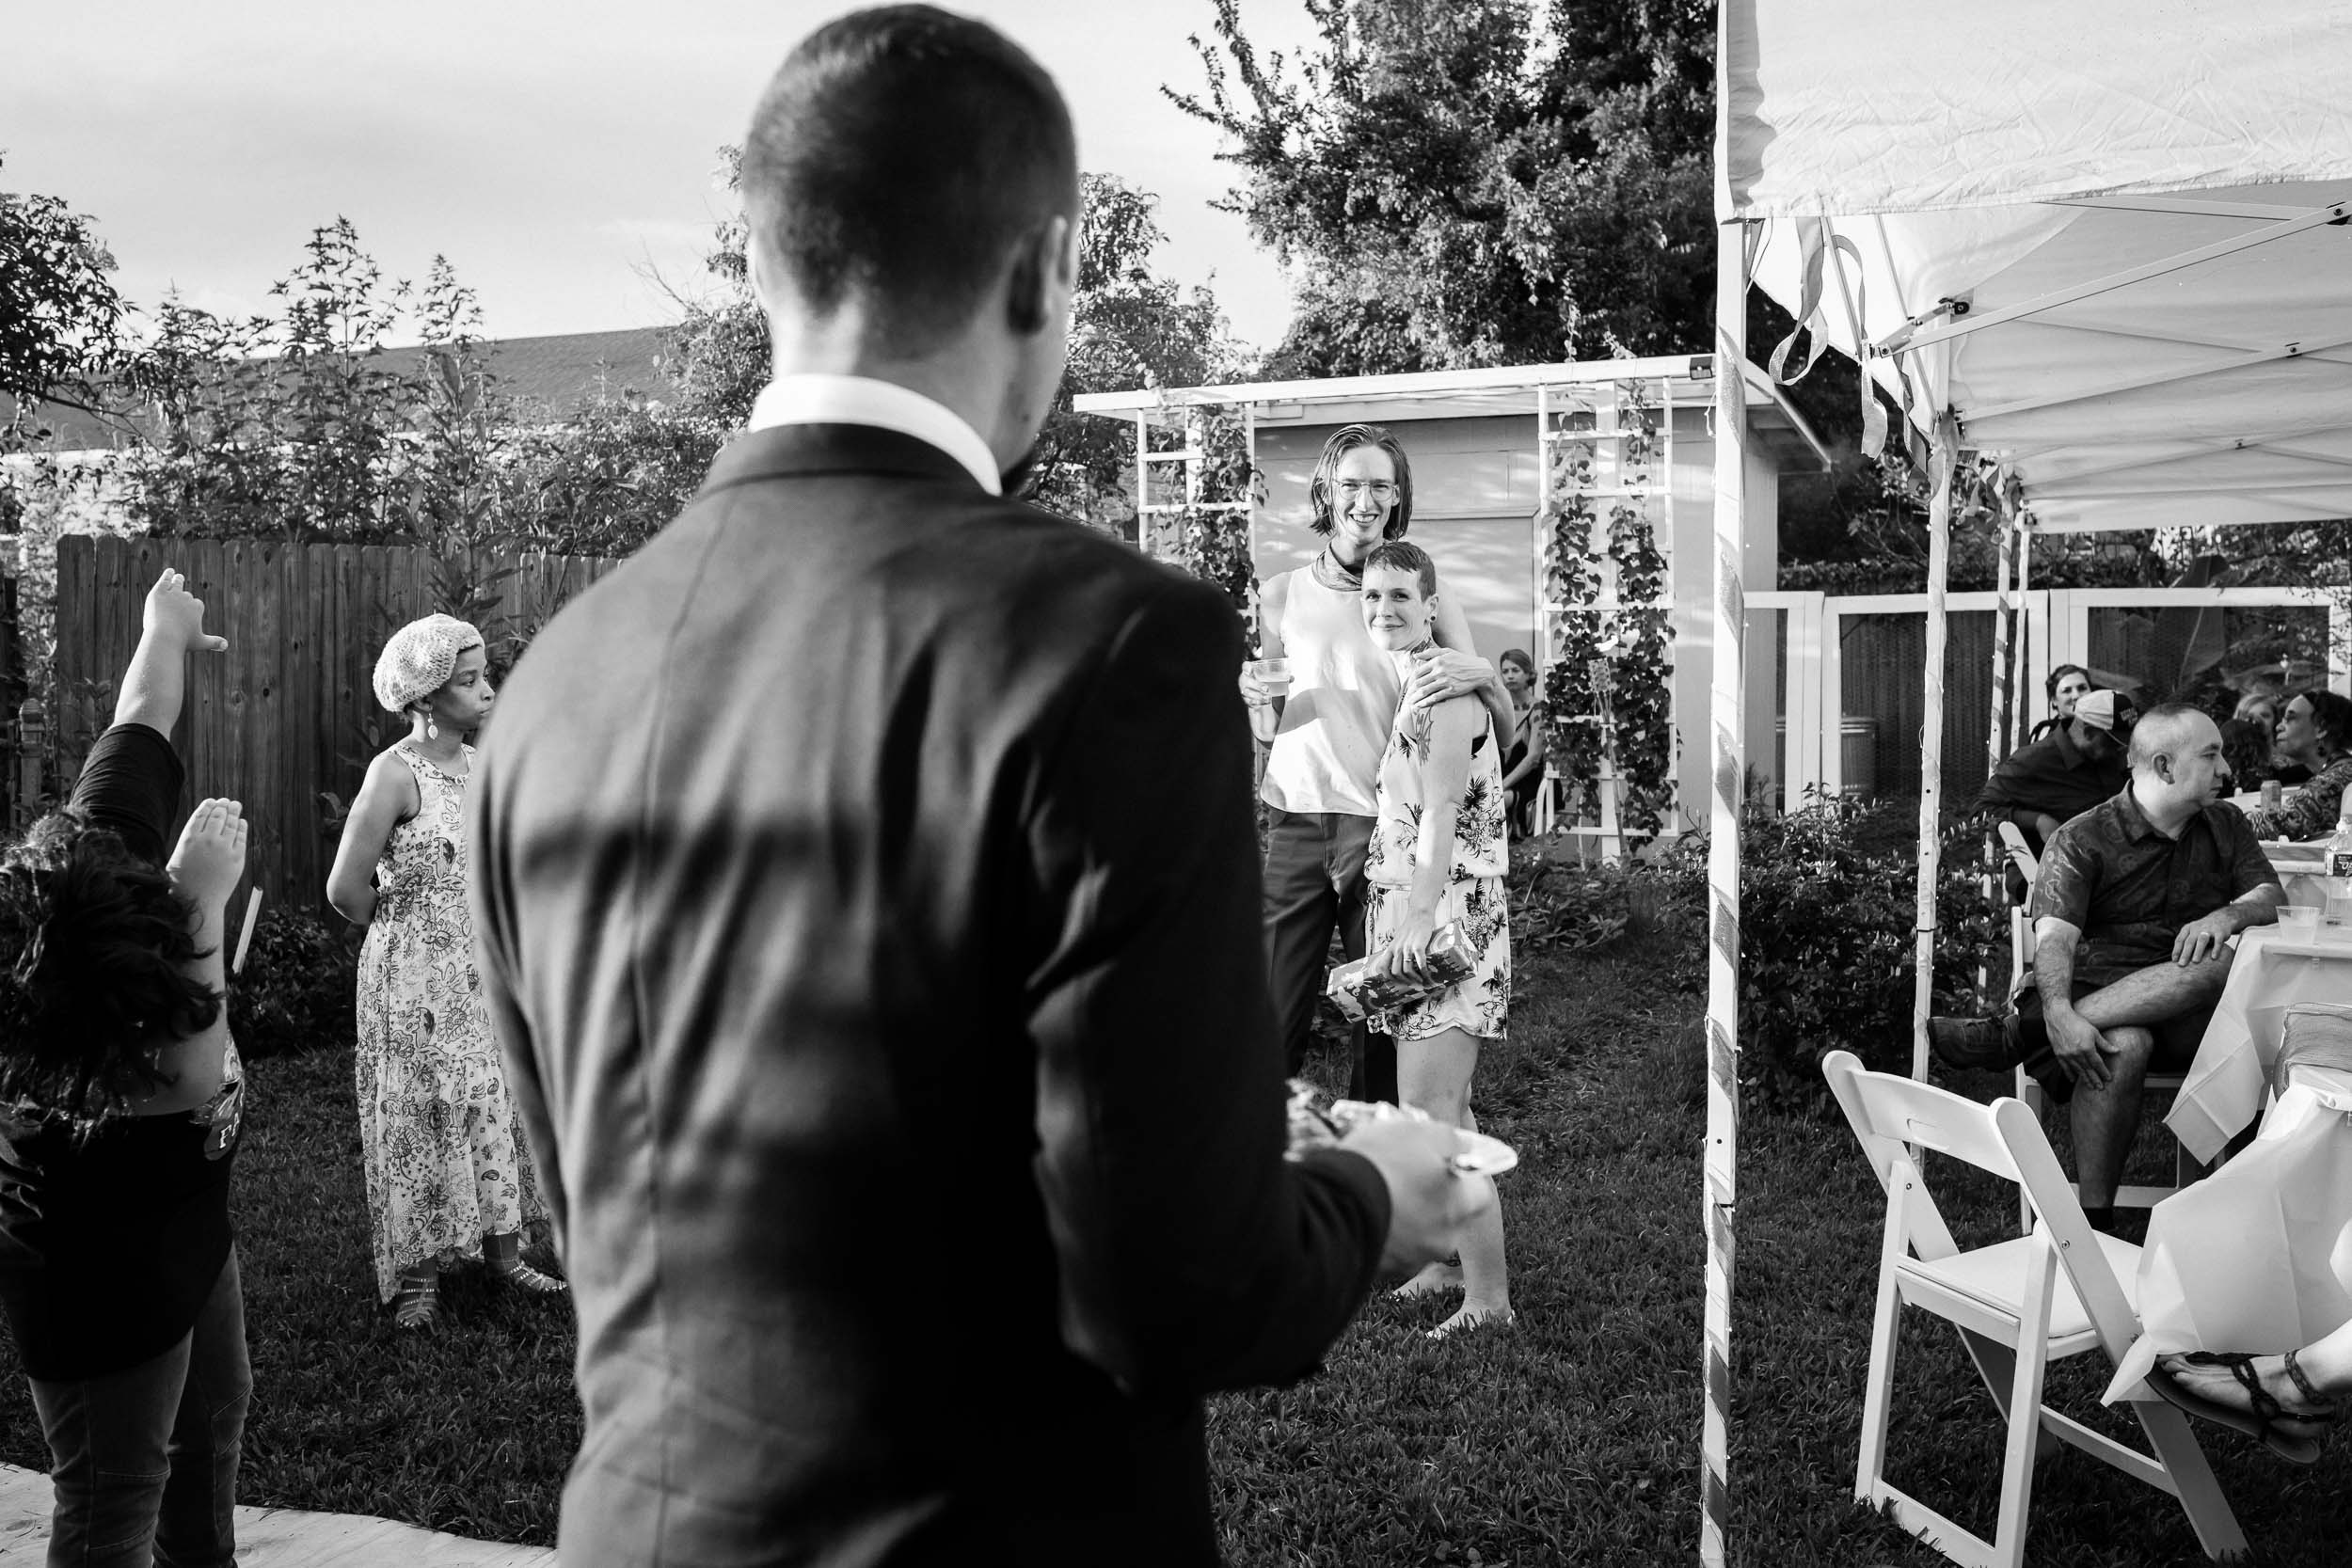 julie-verlinden-wedding-photography-IMG_7634.jpg